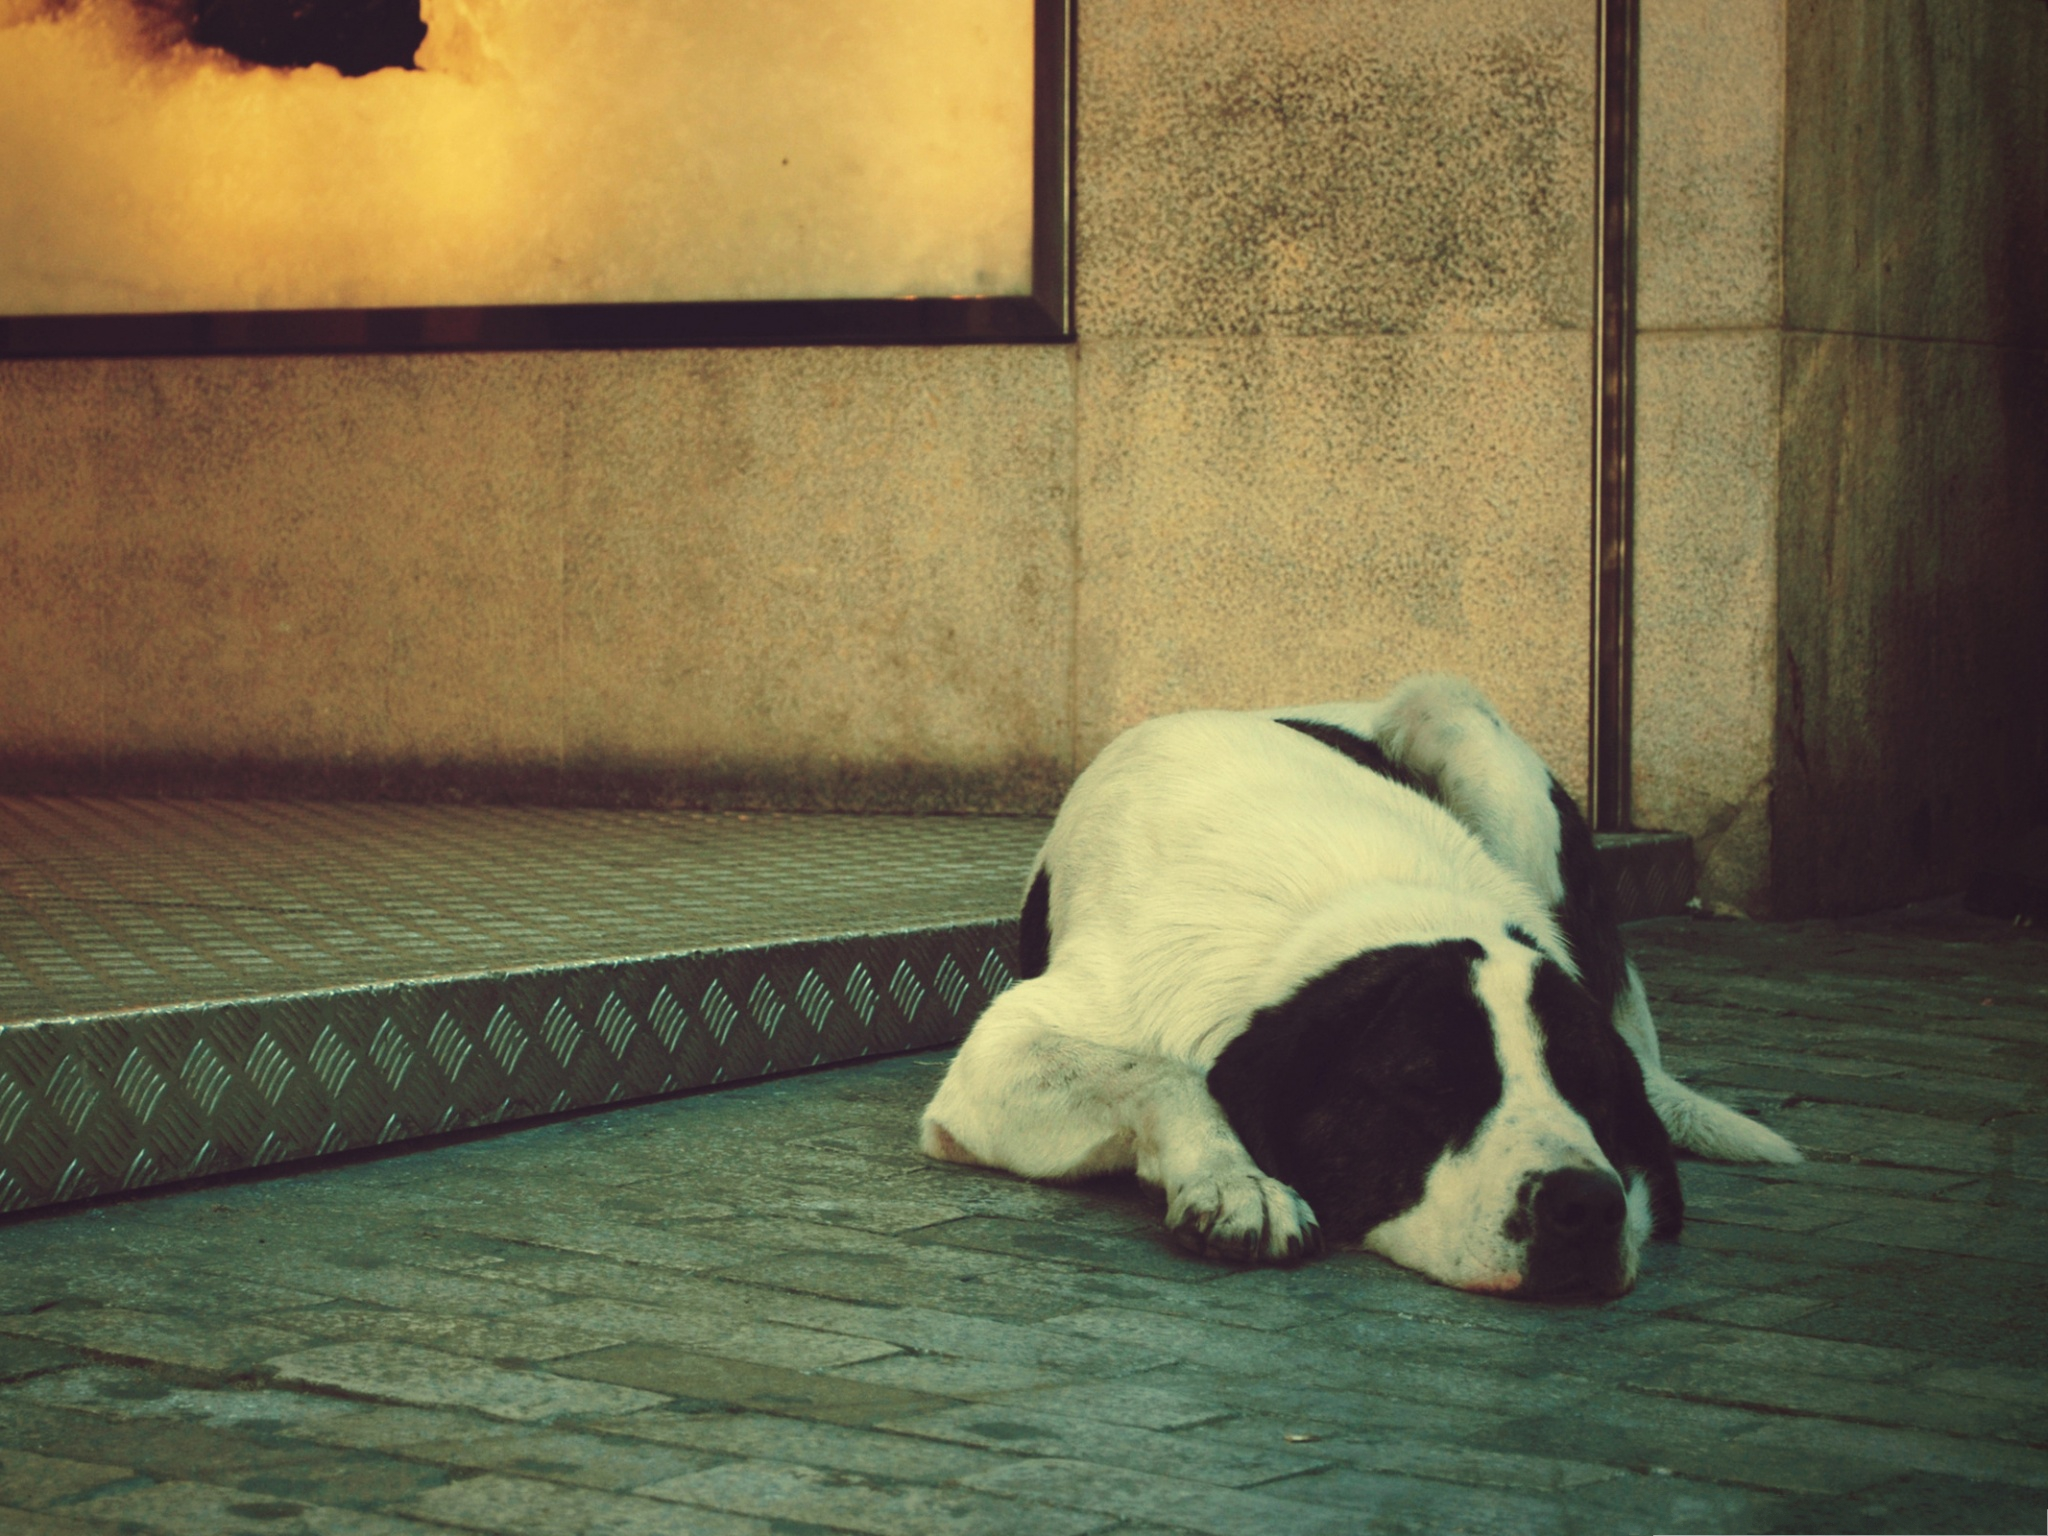 click to free download the wallpaper--Swiss Mountain Dog, Lonely Puppy Lying on Flat Surface, Poor Look 2048X1536 free wallpaper download